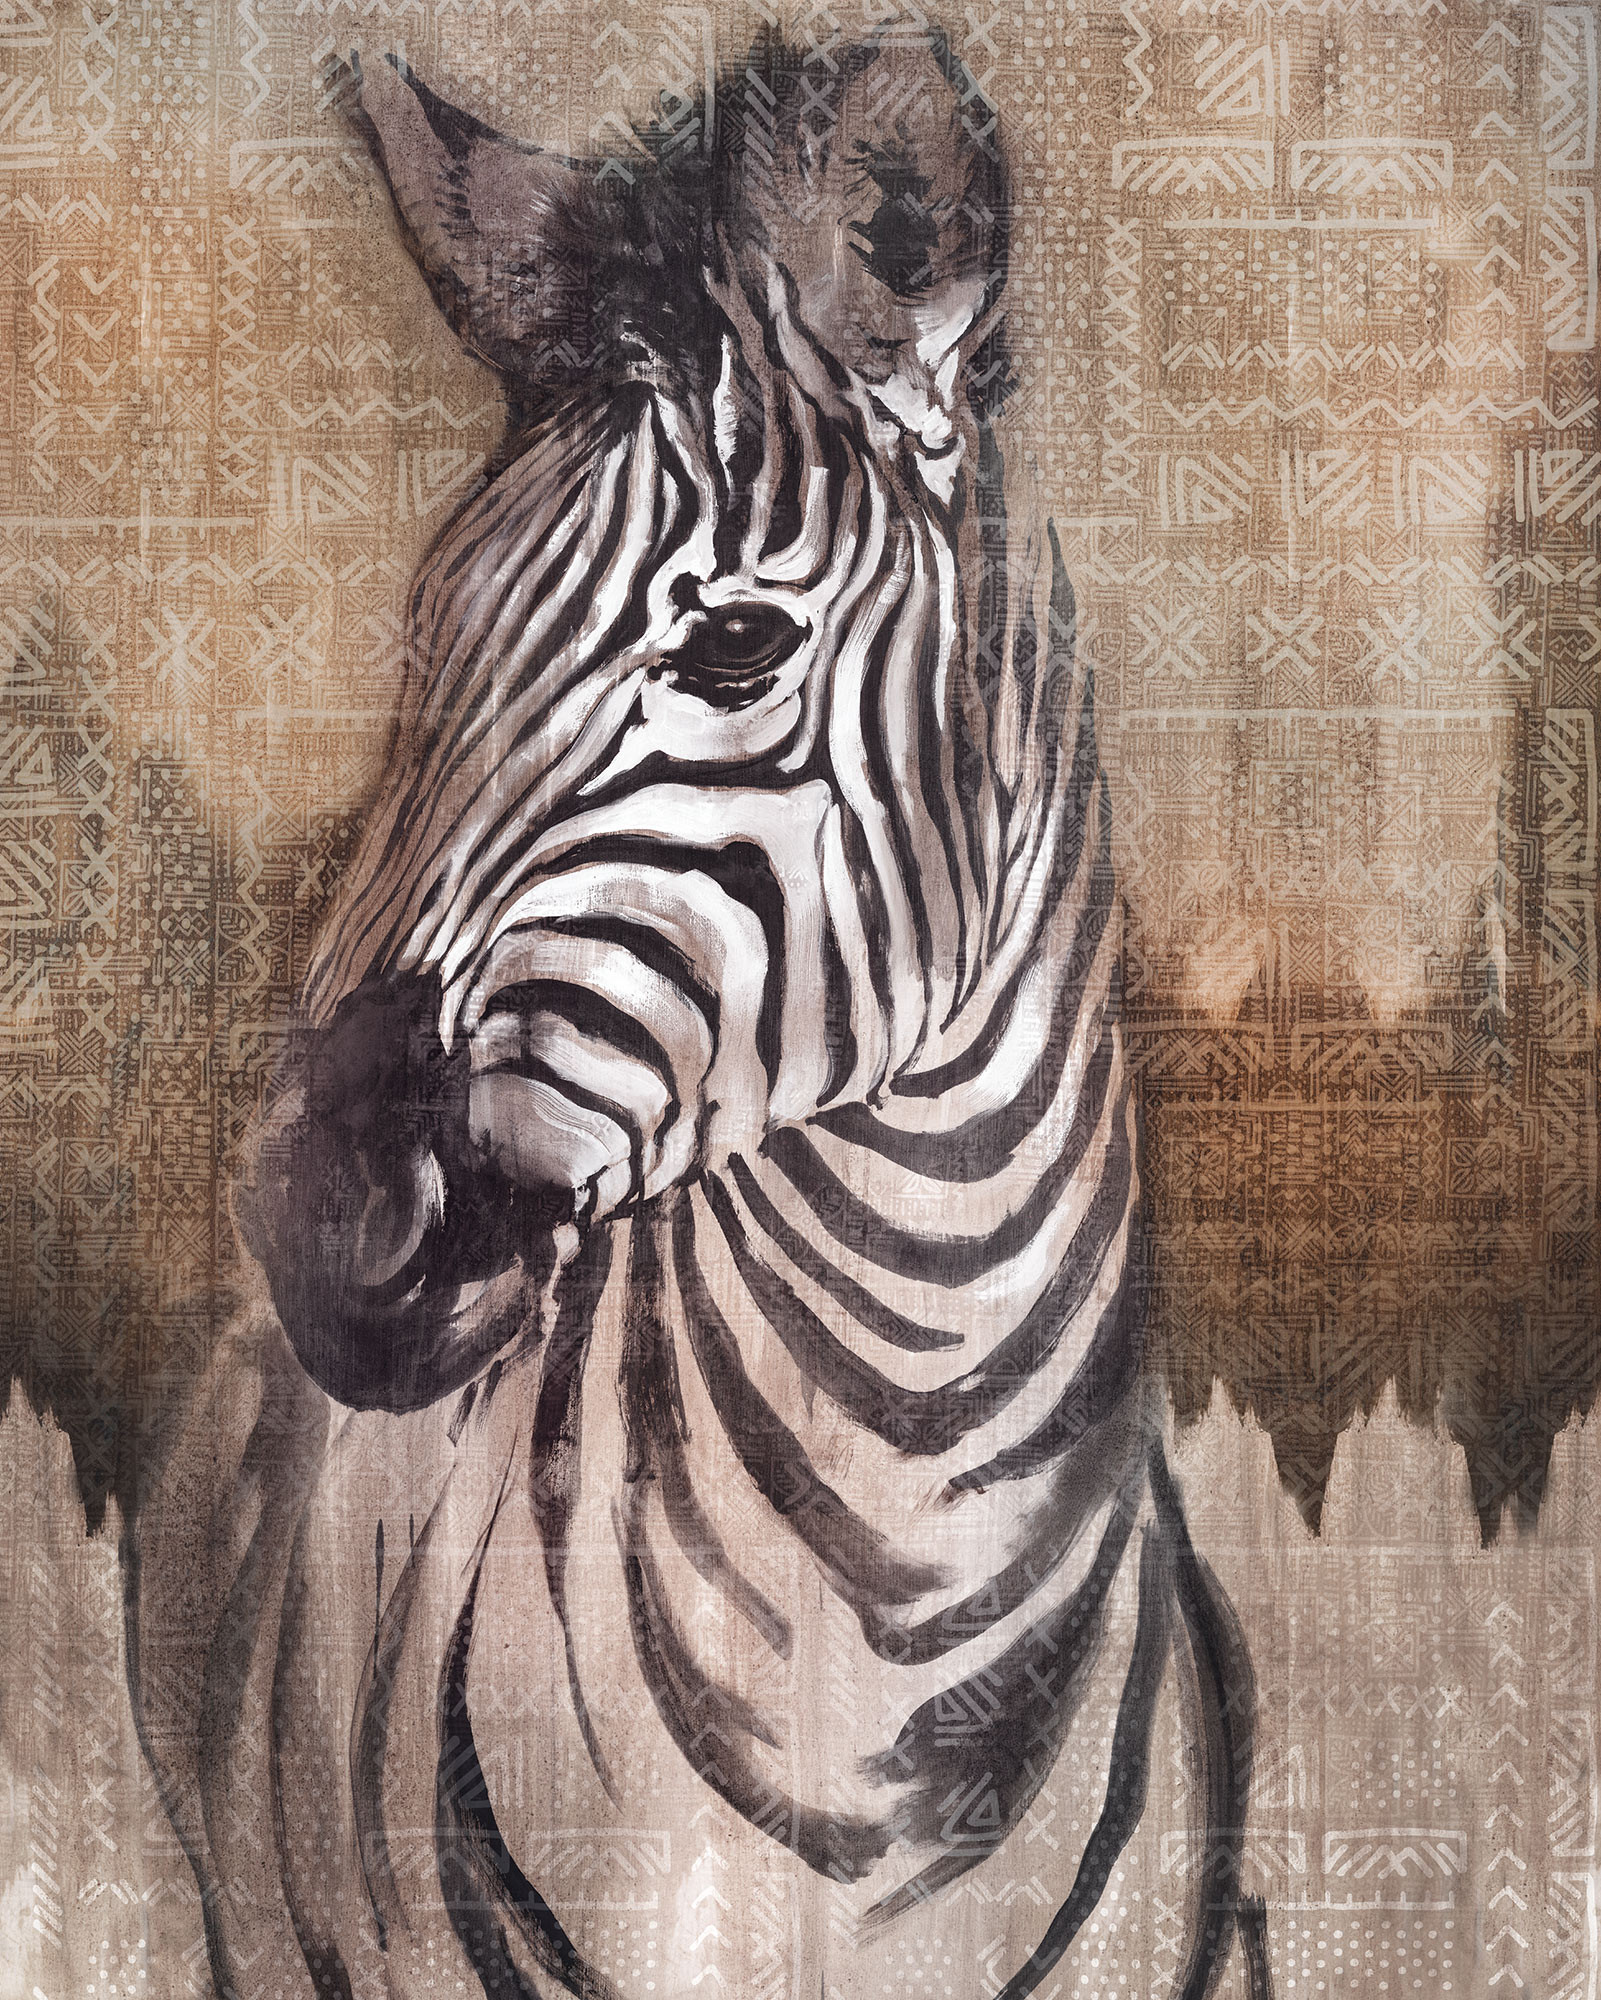 Zebre dating site.